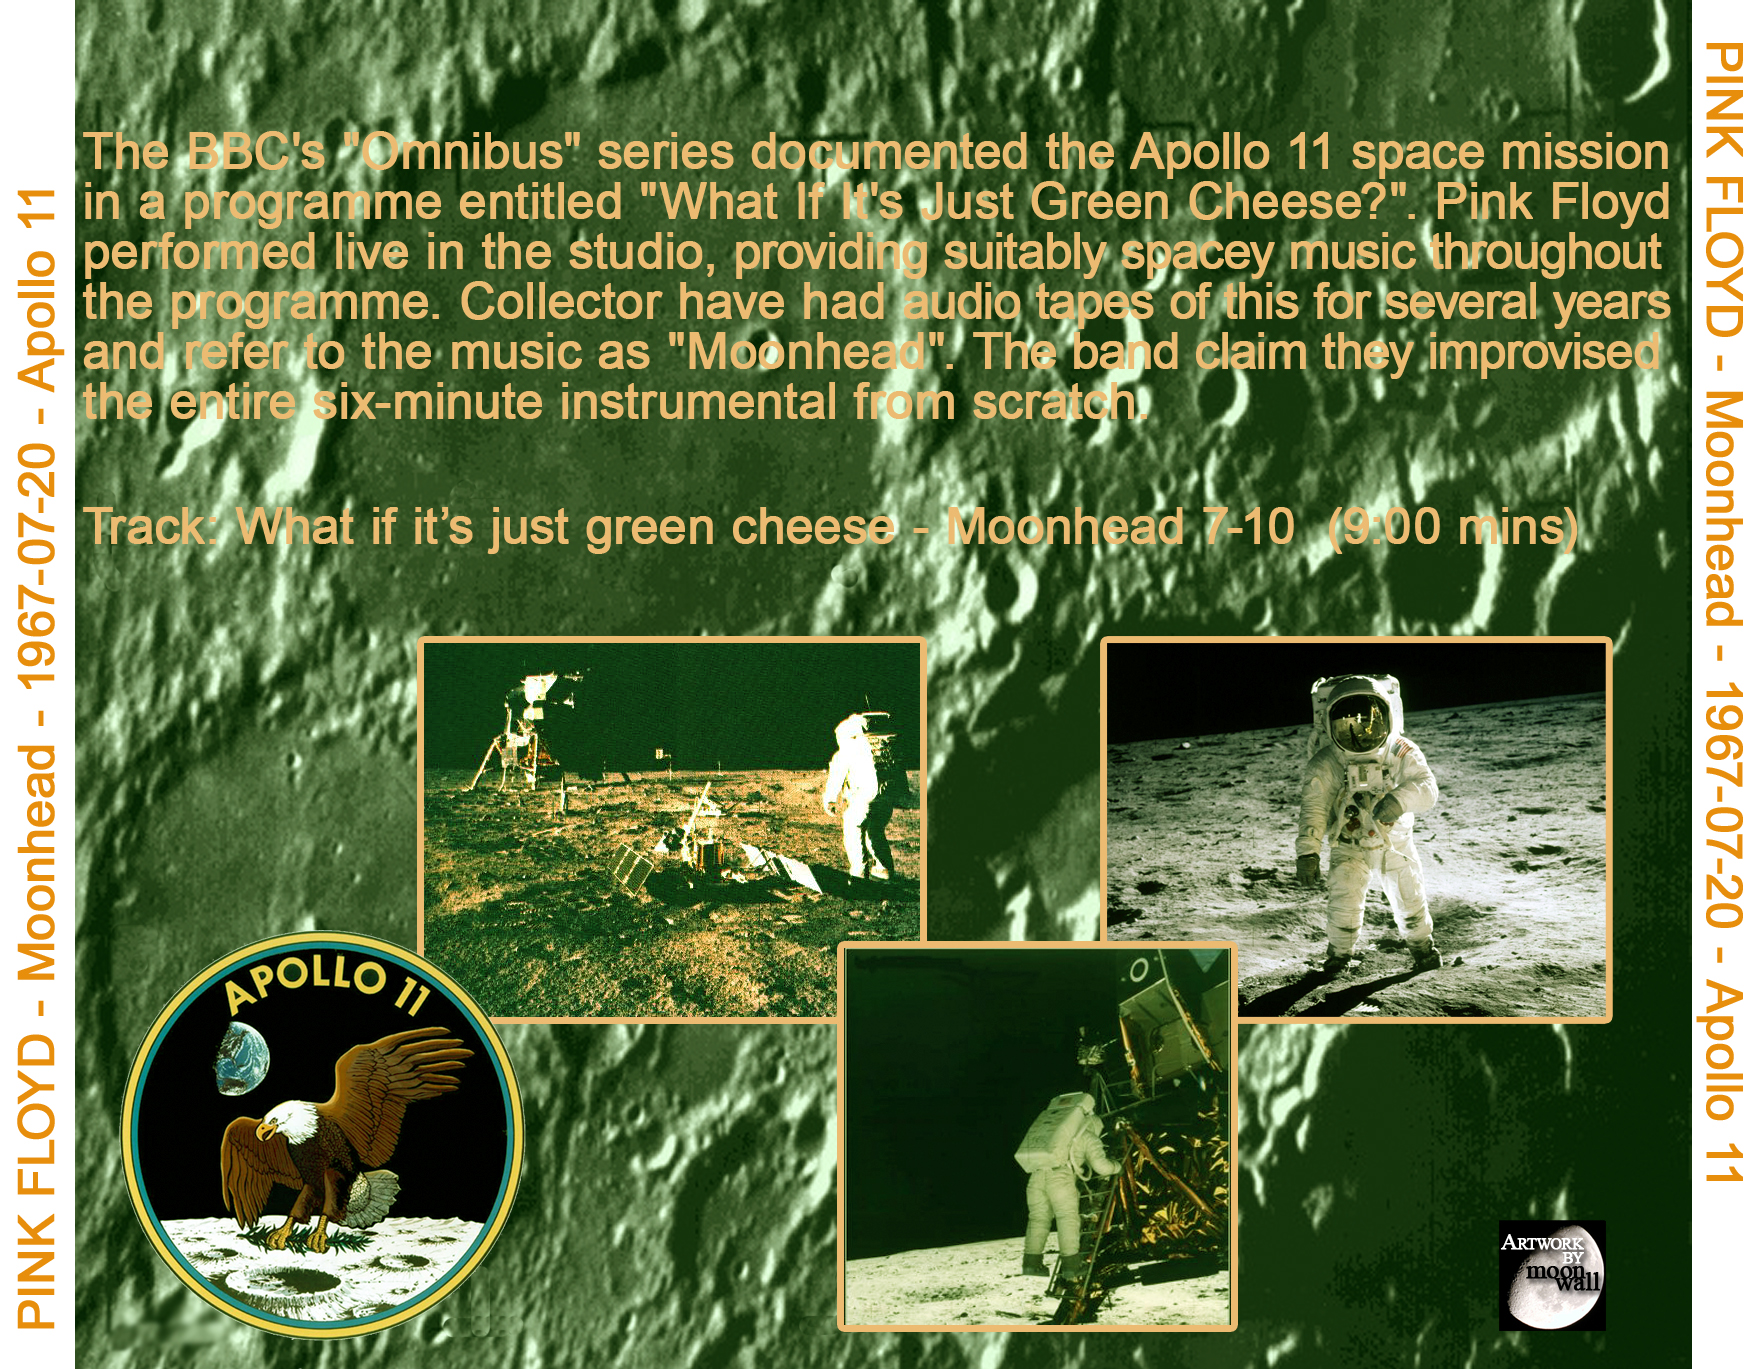 apollo 11 space mission bbc - photo #6